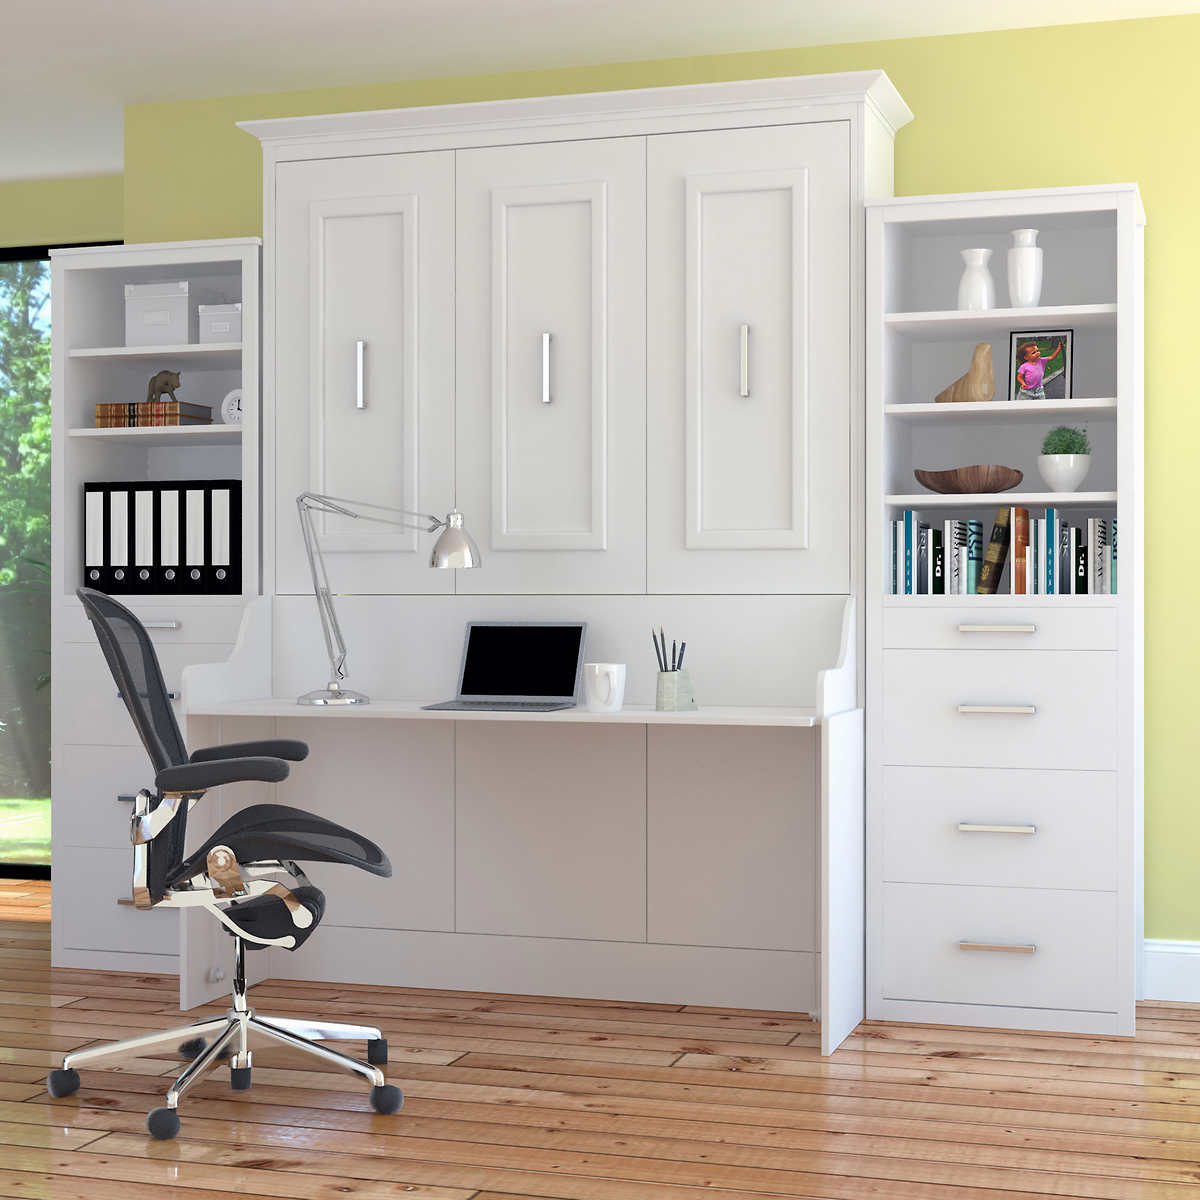 Bed Room Porter Queen Portrait Wall Bed With Desk And Two Side Towers In White